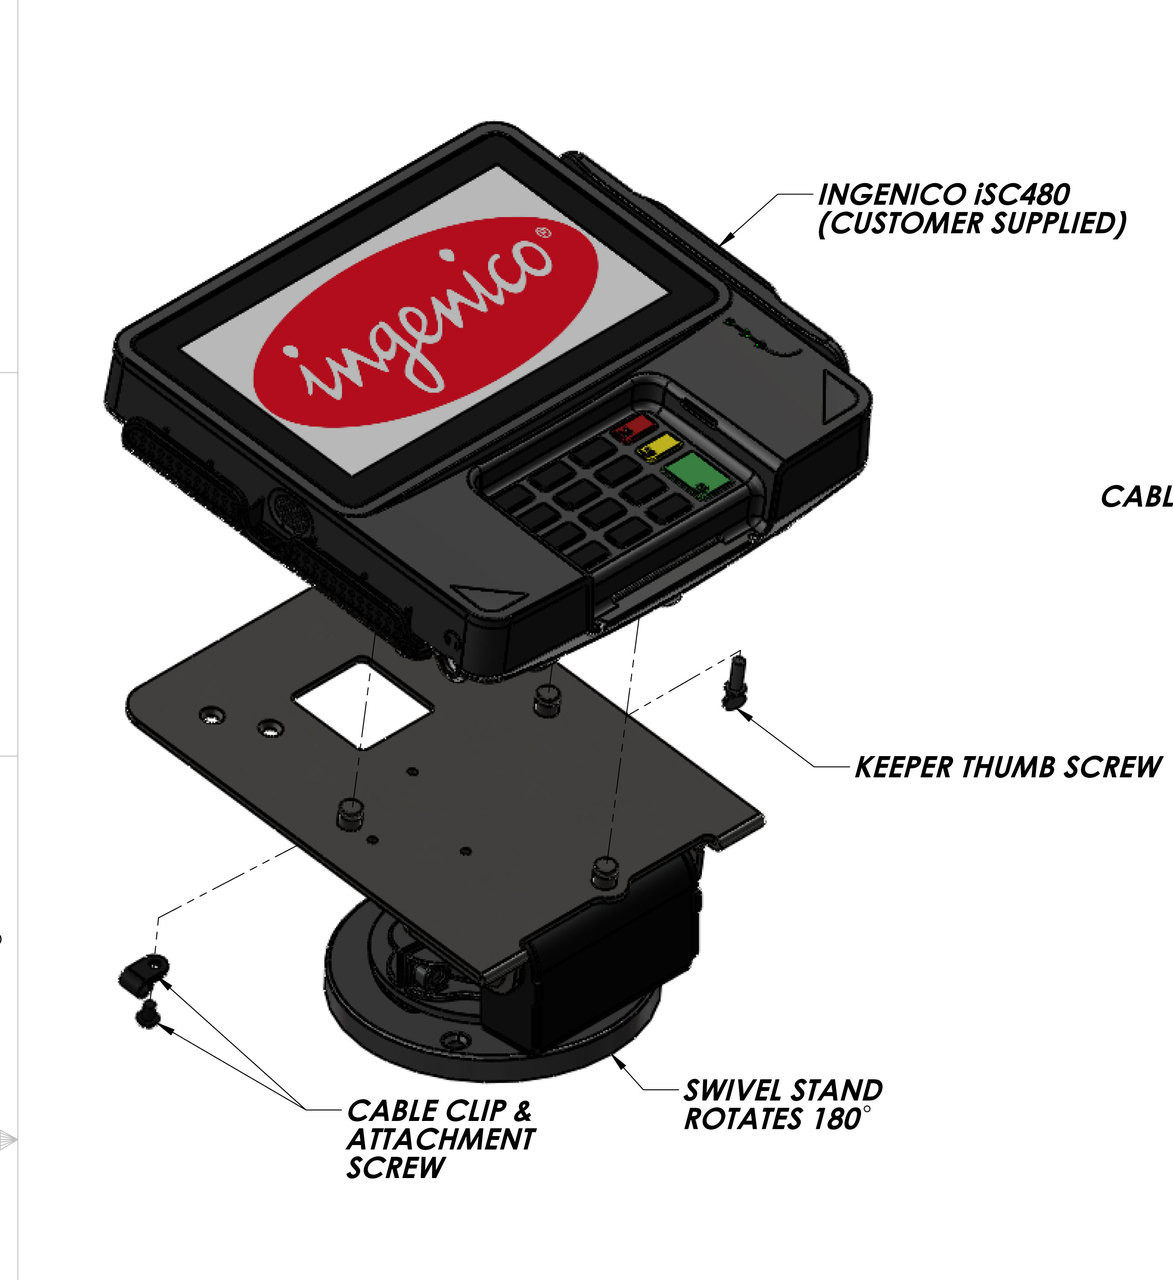 Ingenico iSC480 Credit Card Stand Low Profile by Swivel Stands